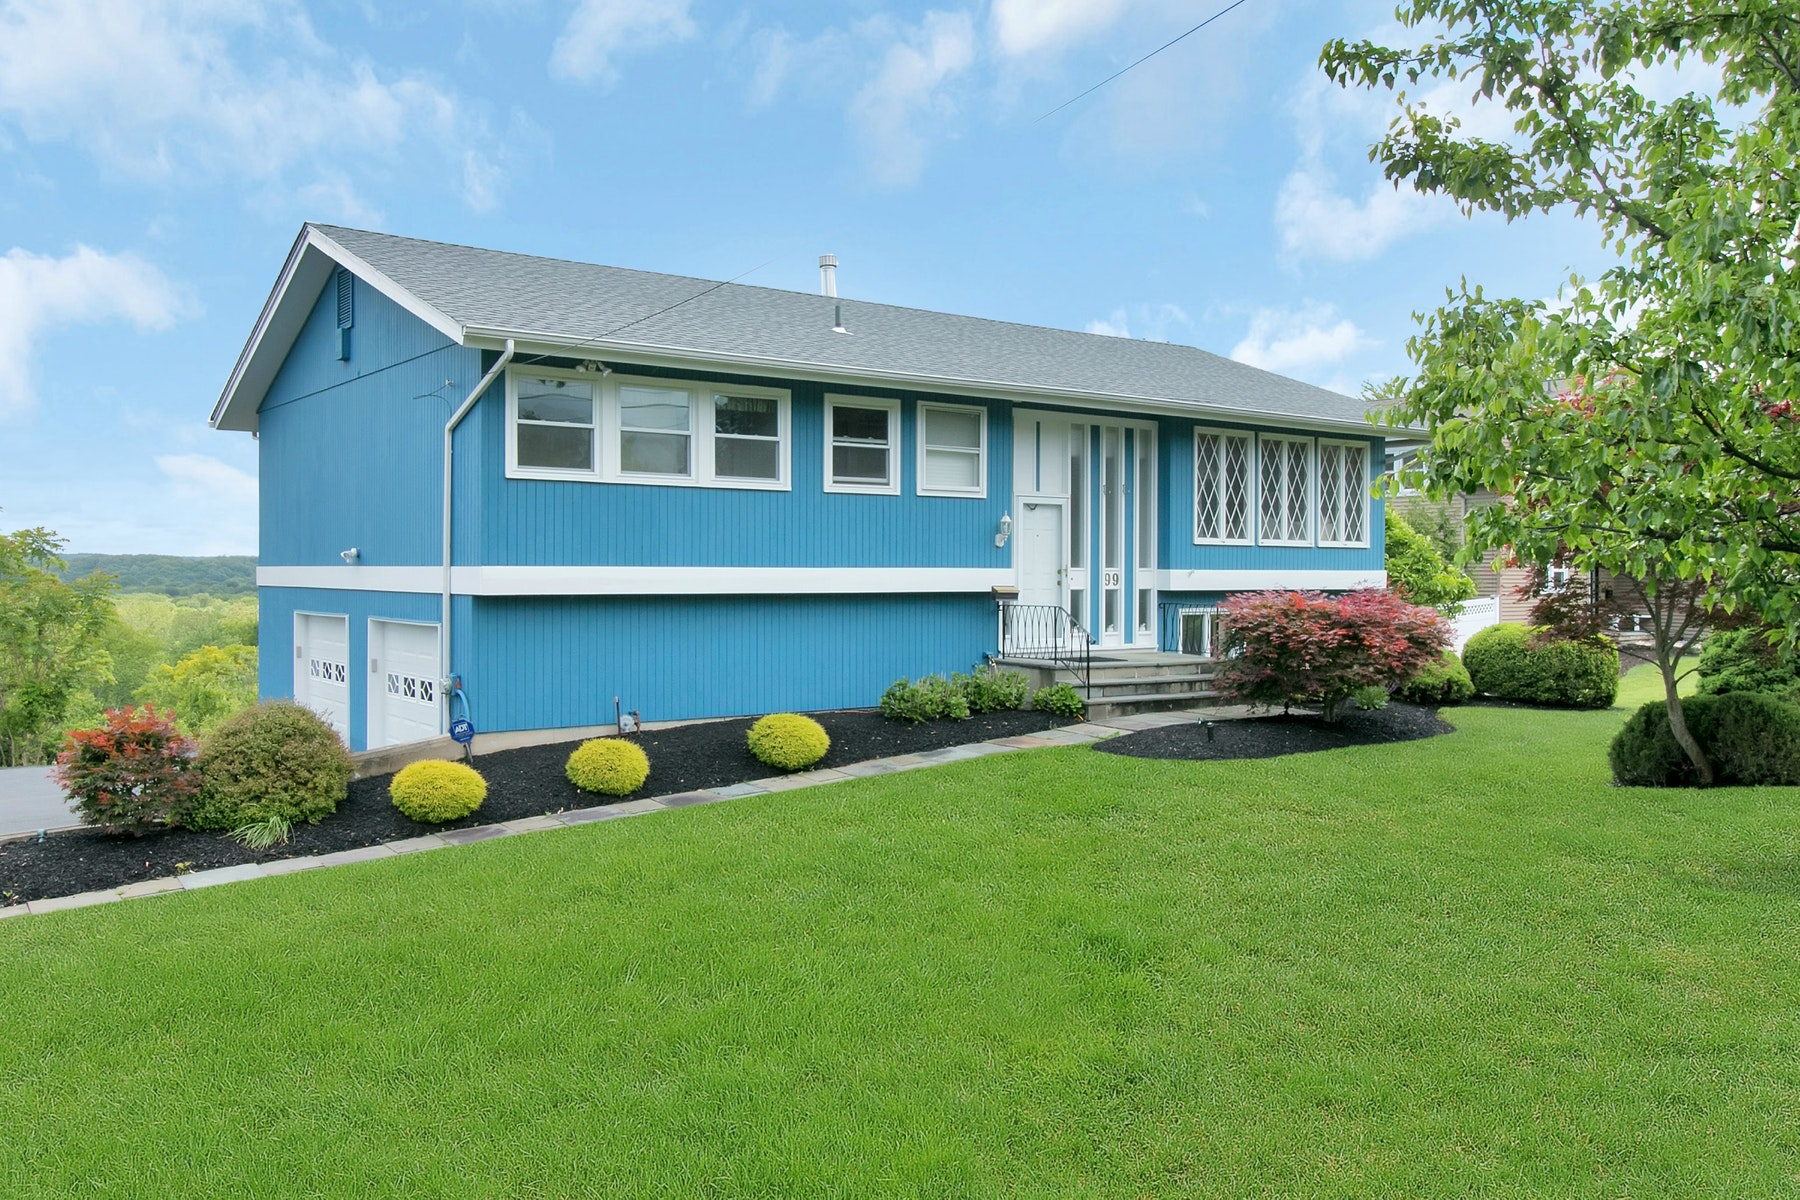 Single Family Home for Sale at 99 Lester Drive - Sale Pending Tappan, New York, 10983 United States